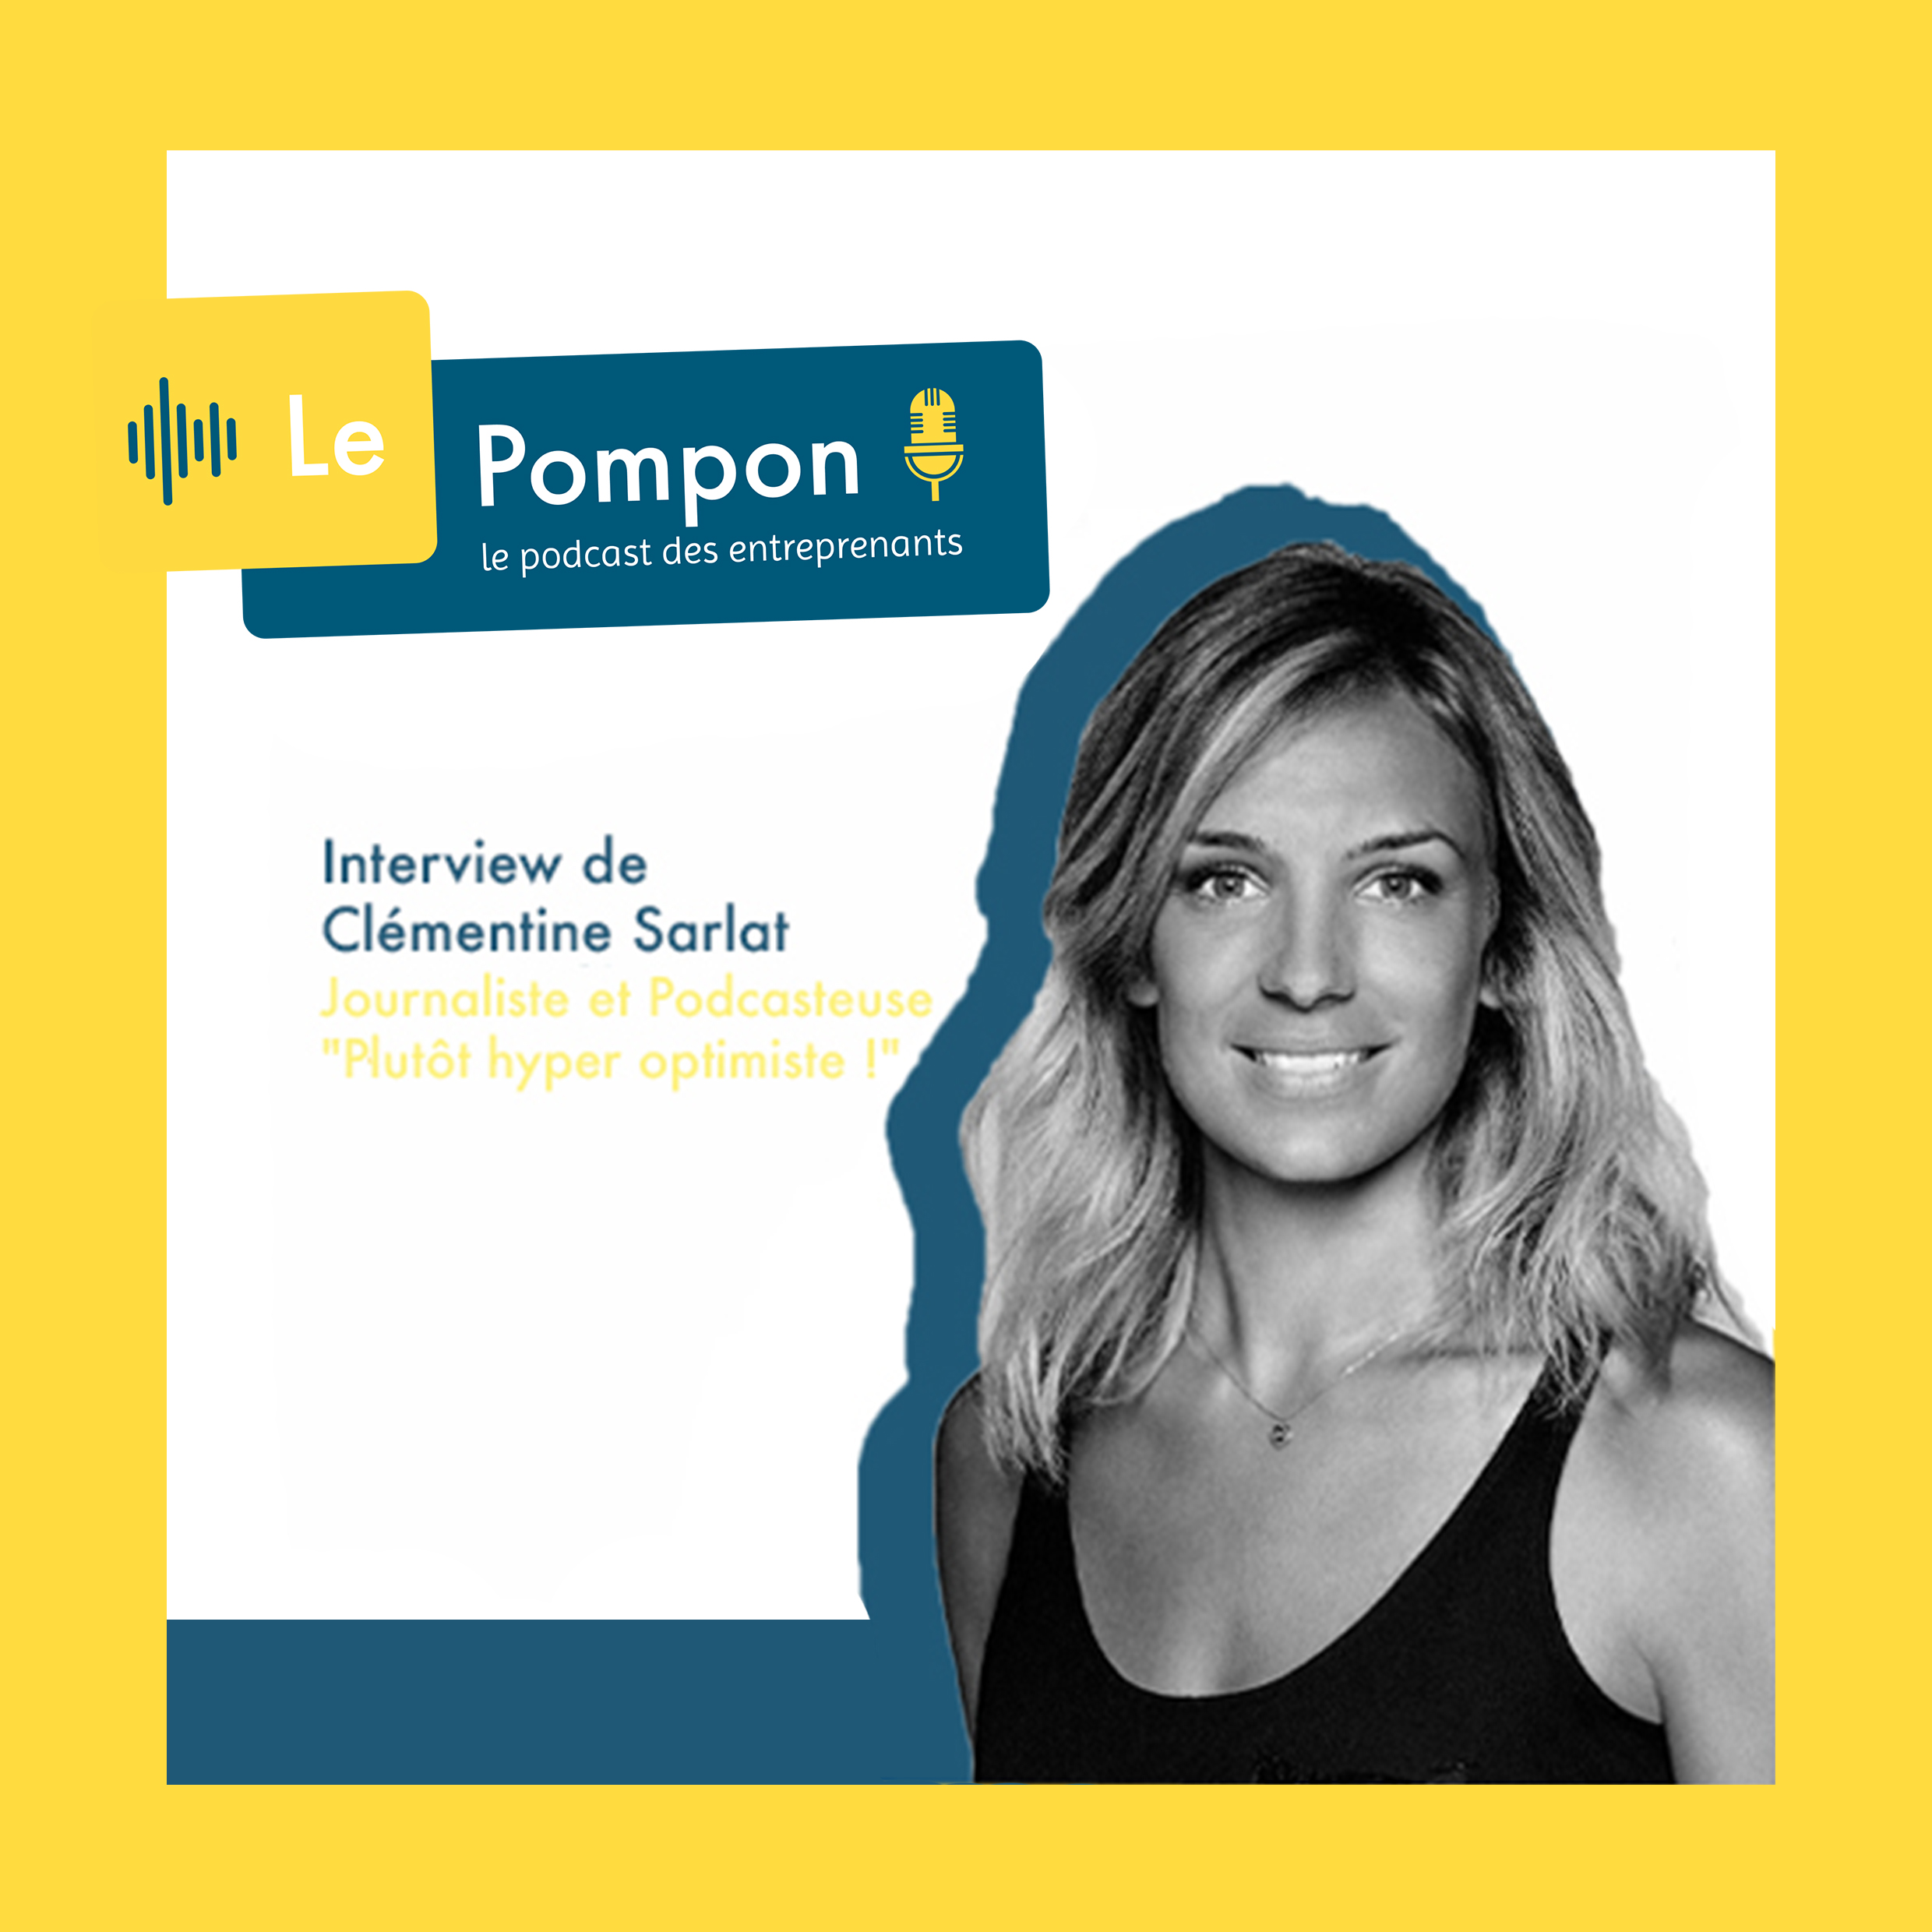 Illustration de l'épisode 6 du Podcast Le Pompon : Clémentine Sarlat, Journaliste sportive et podcasteuse